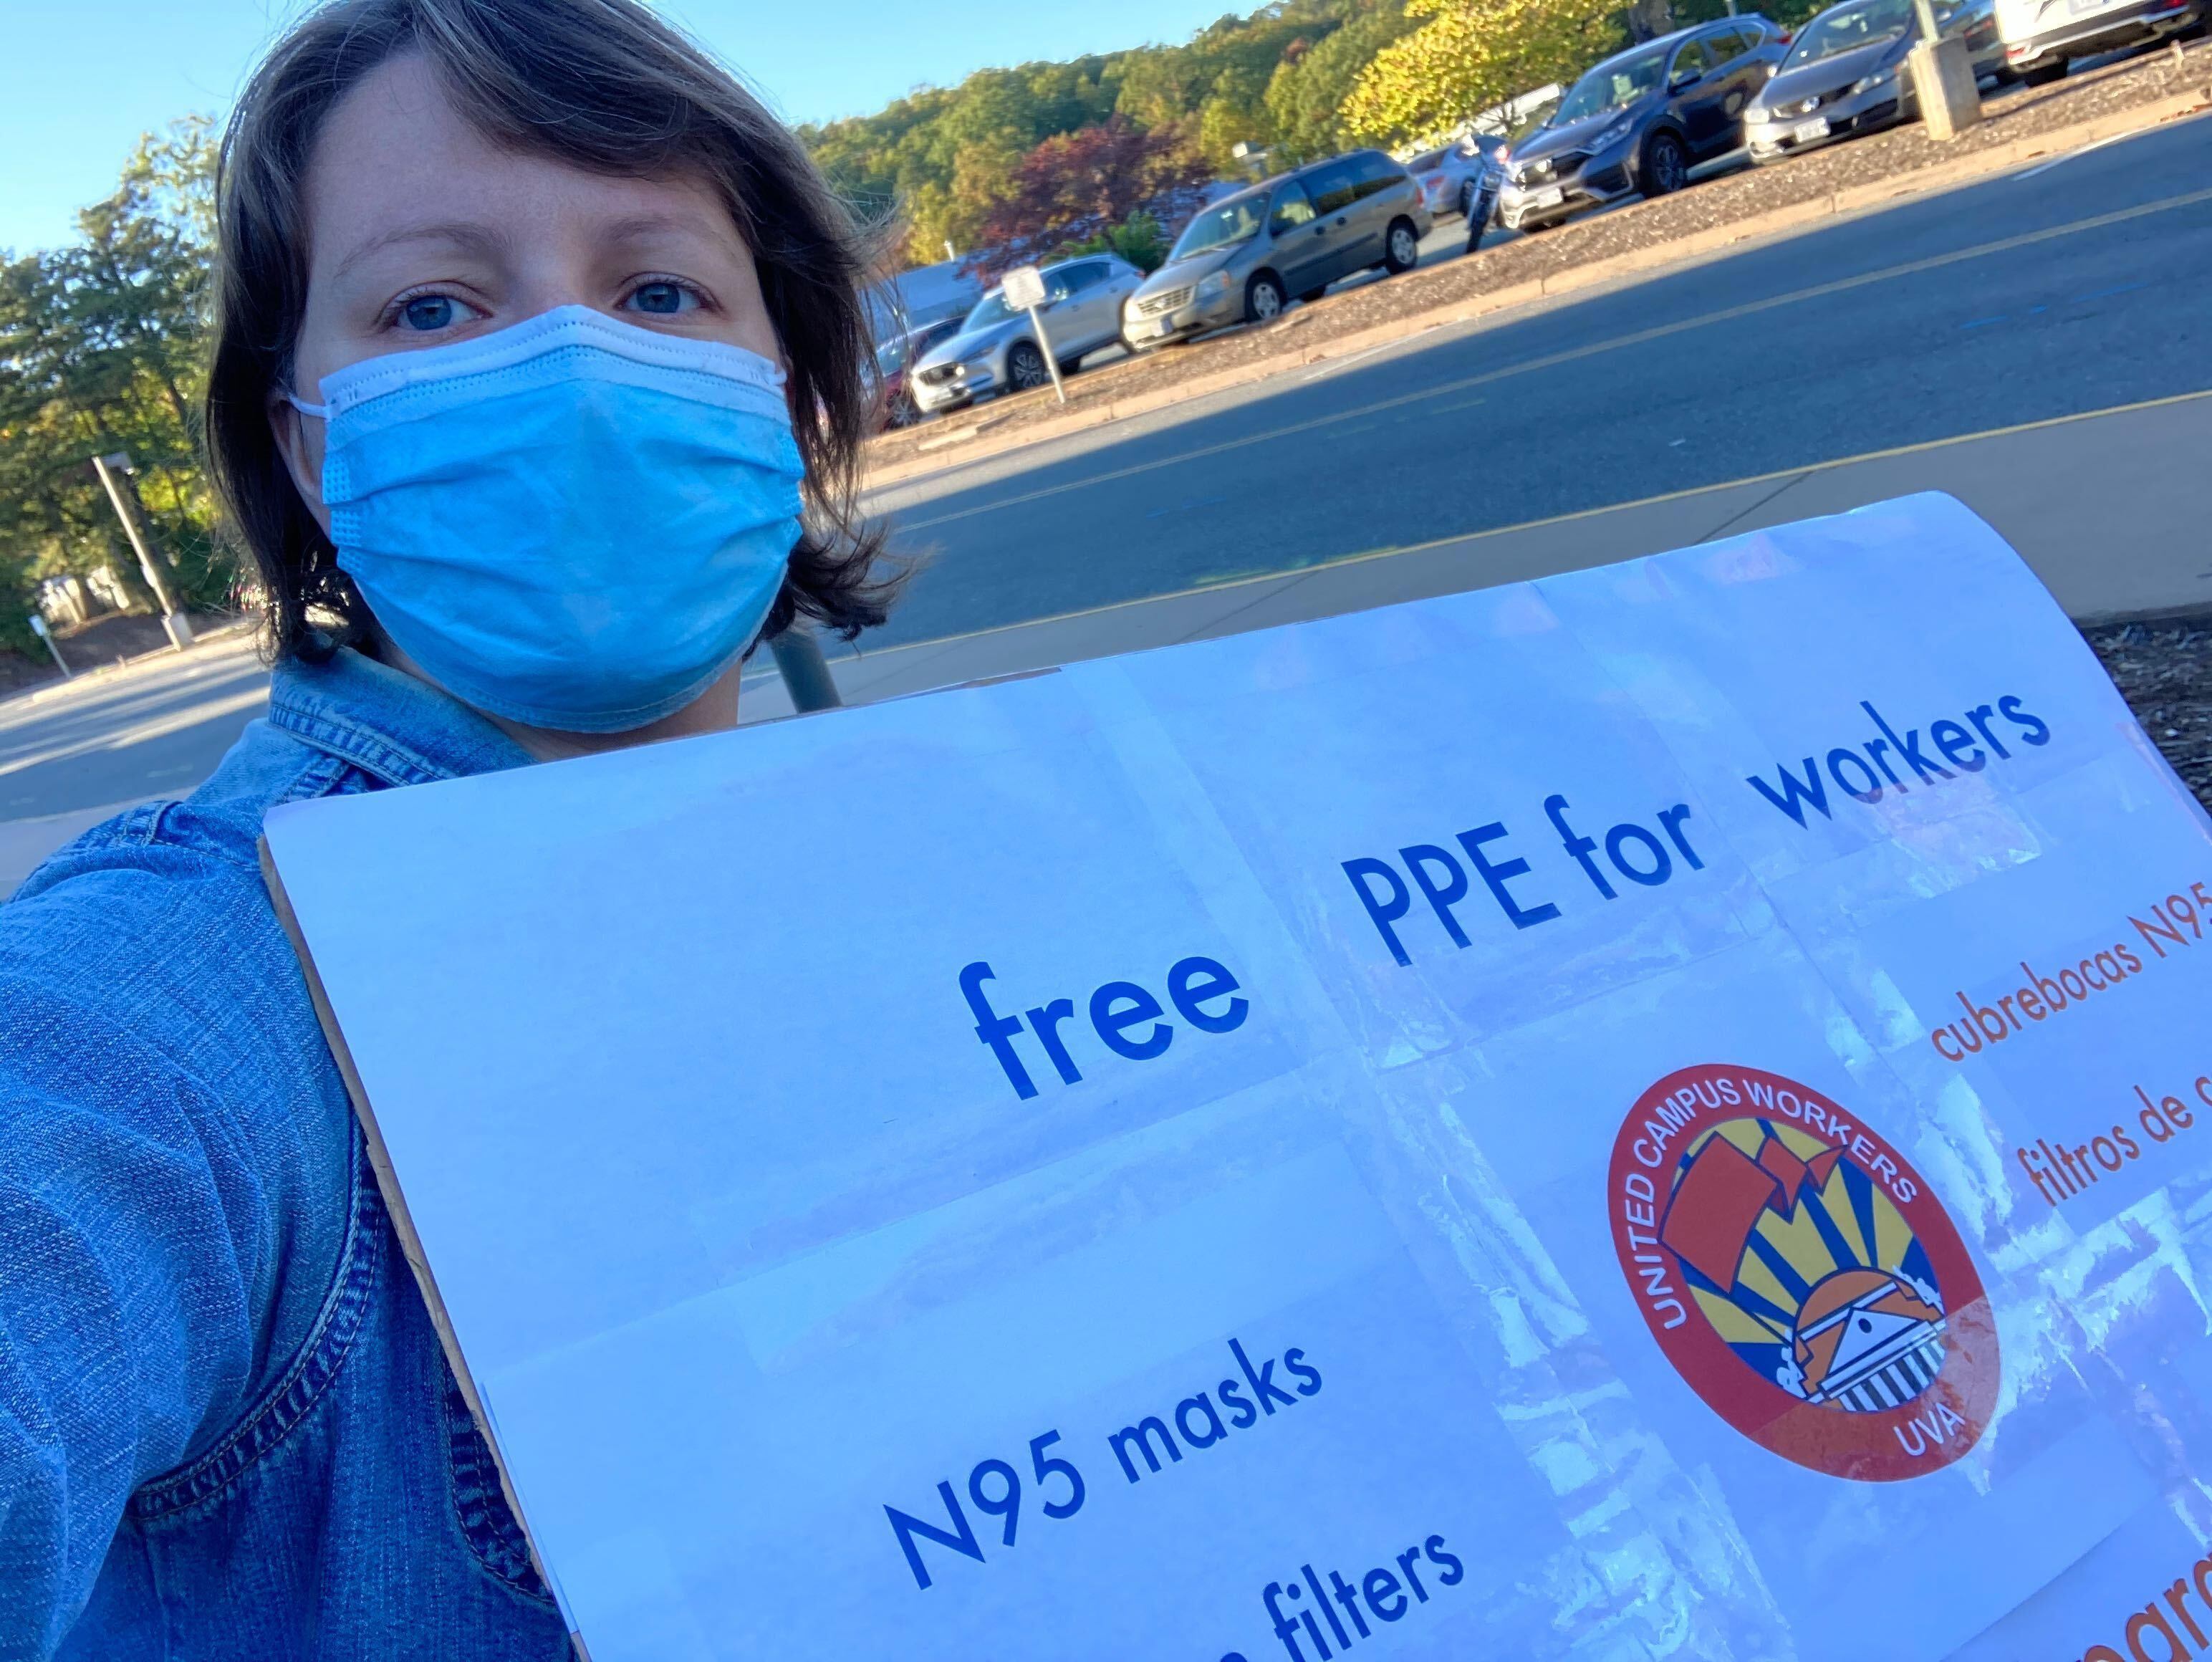 "UCWVA-UVA member holds sign outside in Charlottesville for our mutual aid drive, saying ""free ppe for workers. N95 Masks. Filters. Cubrebacas N95. Filtros..."""